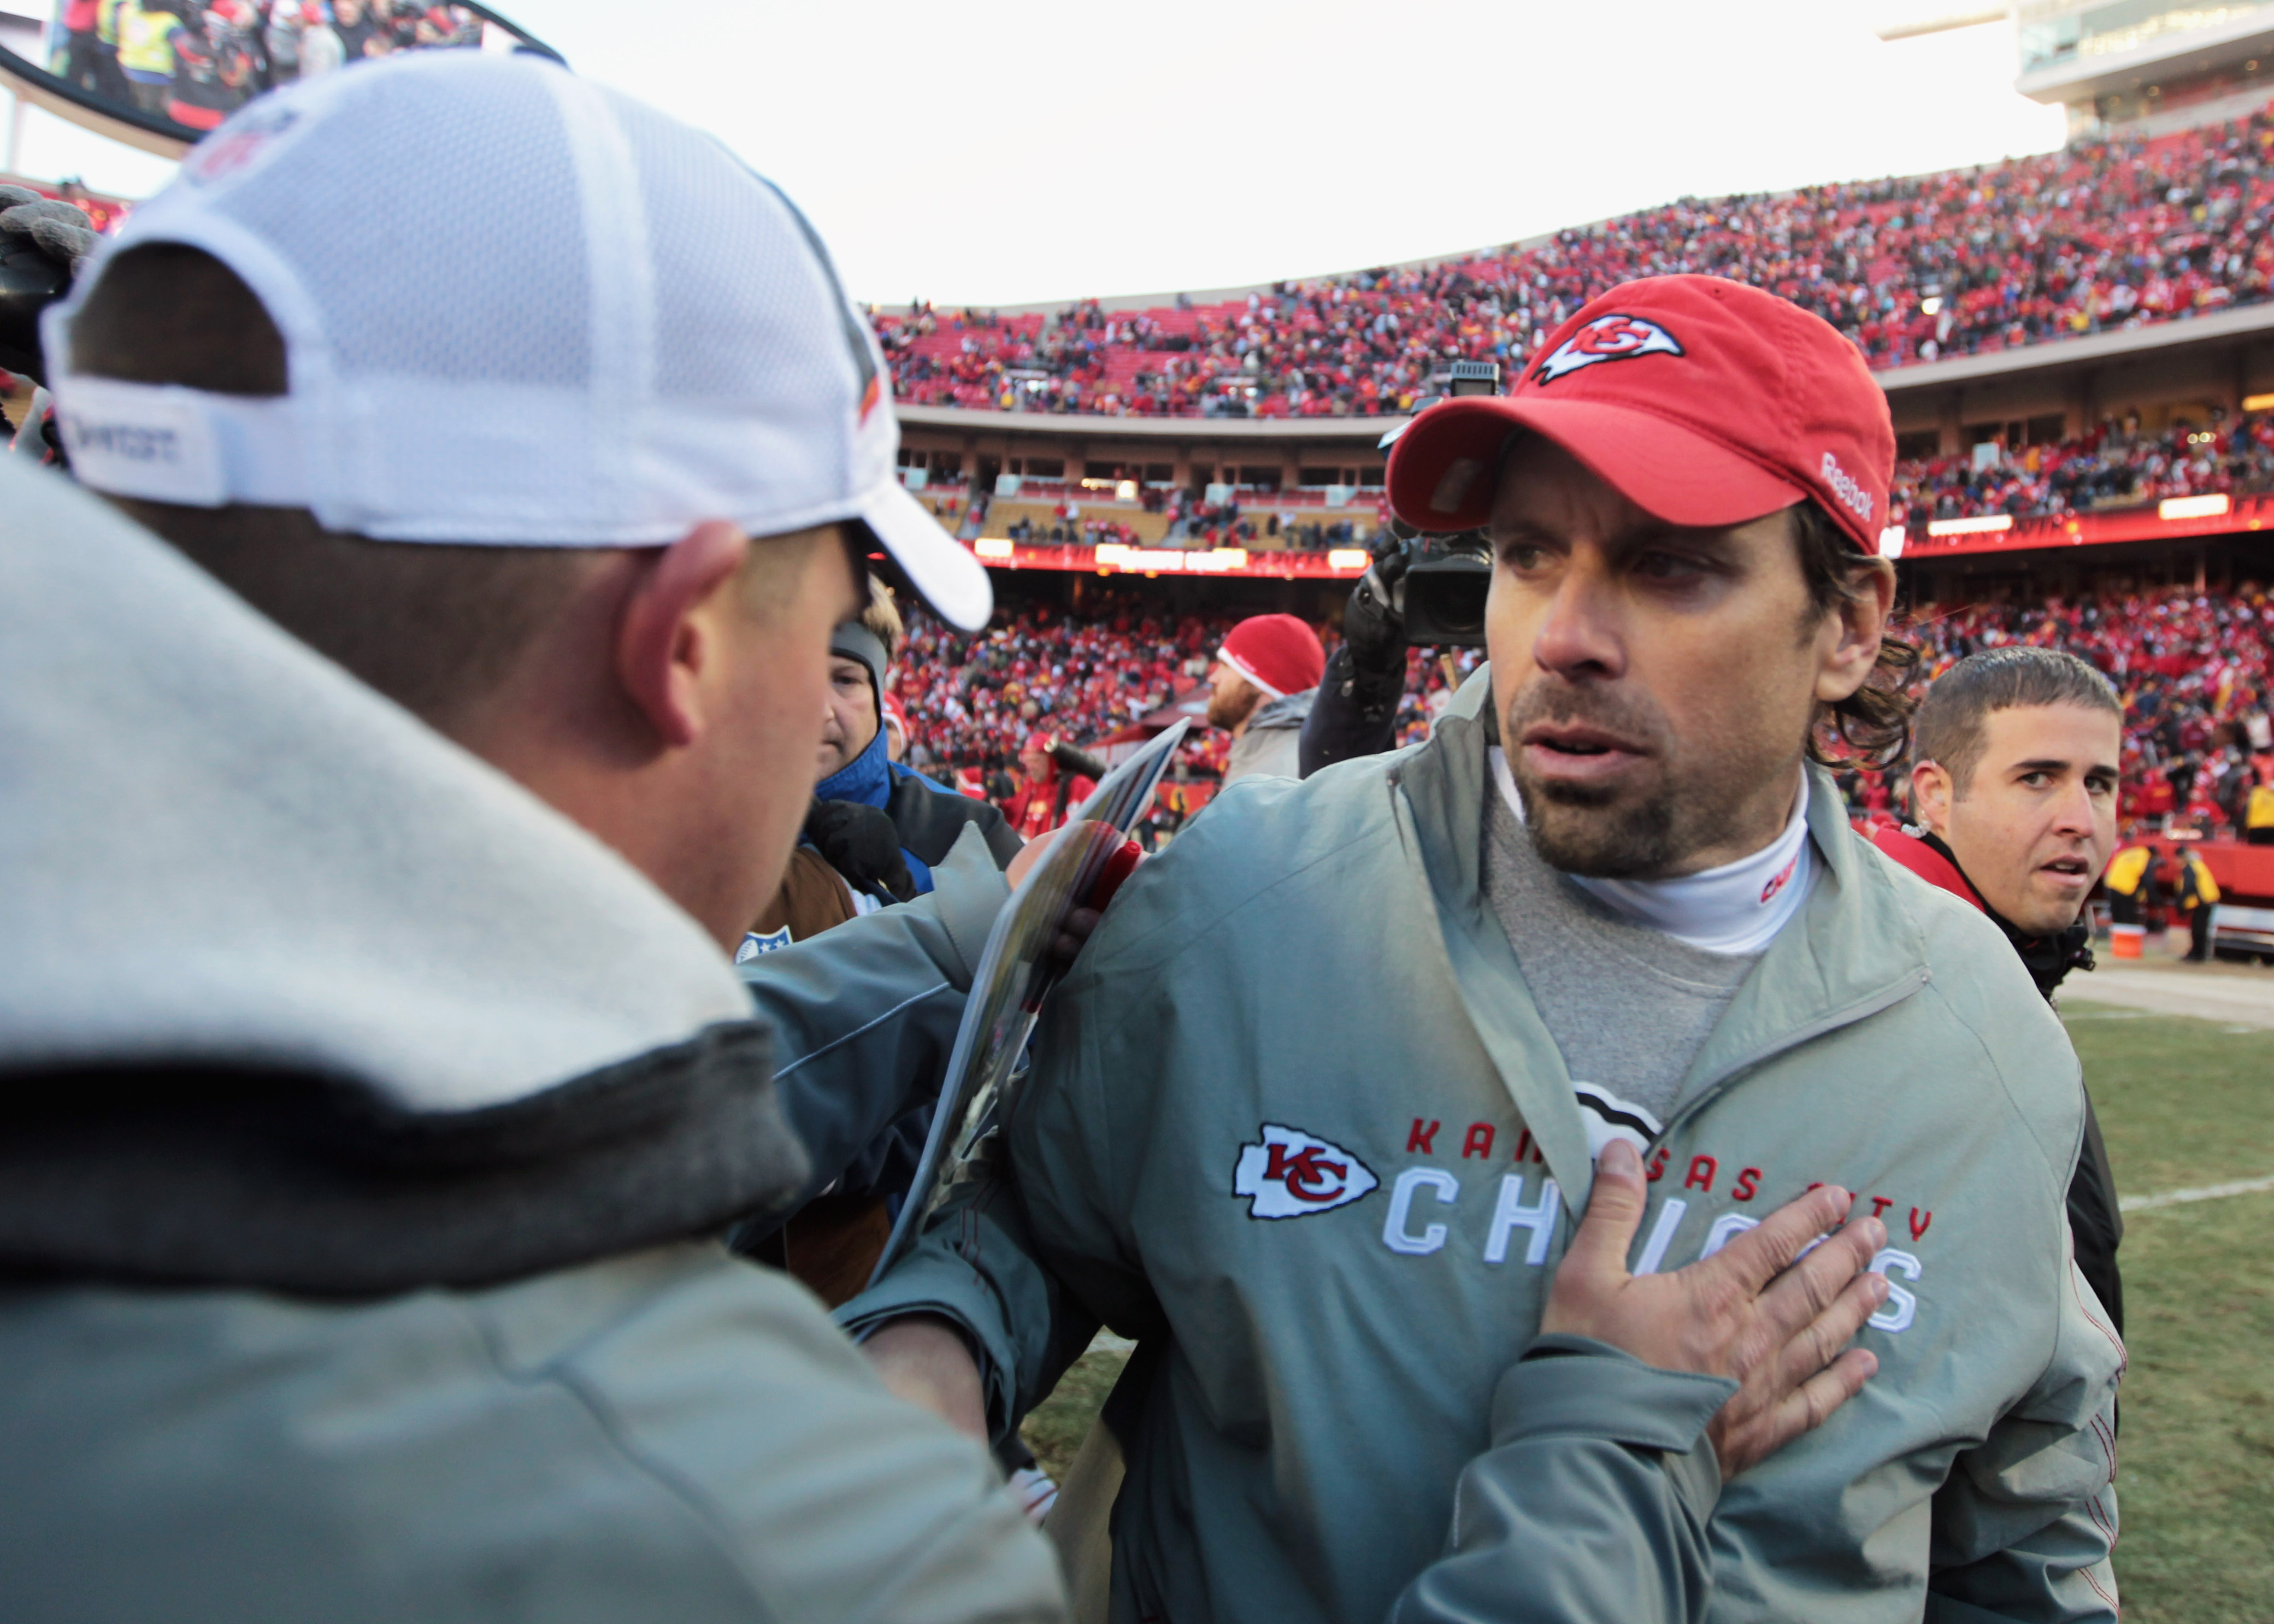 KANSAS CITY, MO - DECEMBER 05:  Head coach Todd Haley of the Kansas City Chiefs shakes hands with head coach Josh McDaniels of the Denver Broncos following the game on December 5, 2010 at Arrowhead Stadium in Kansas City, Missouri.  (Photo by Jamie Squire